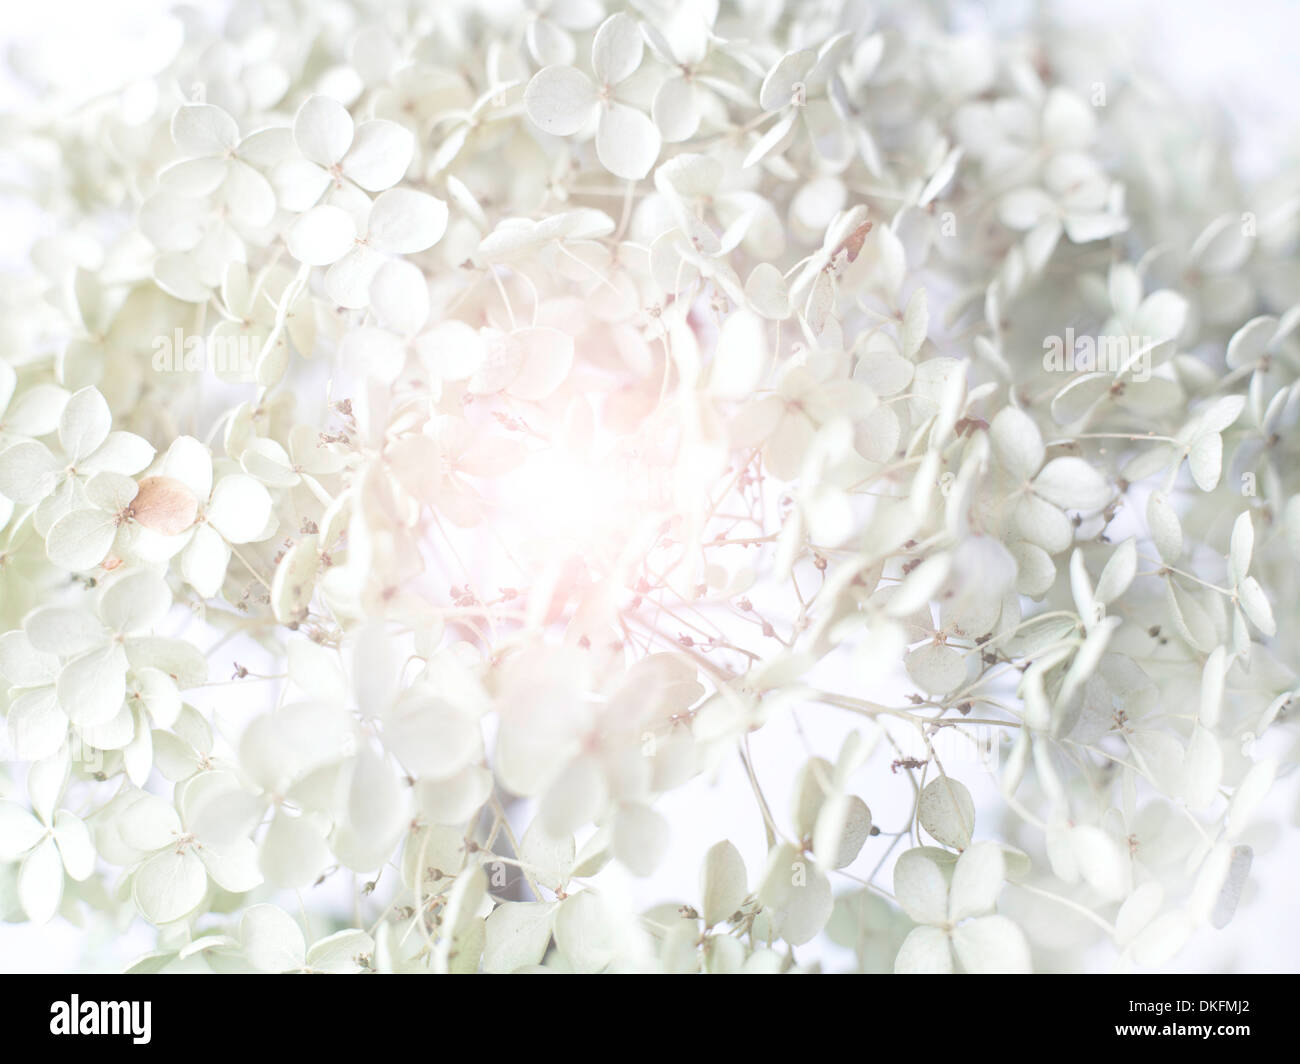 White orchid, close-up - Stock Image